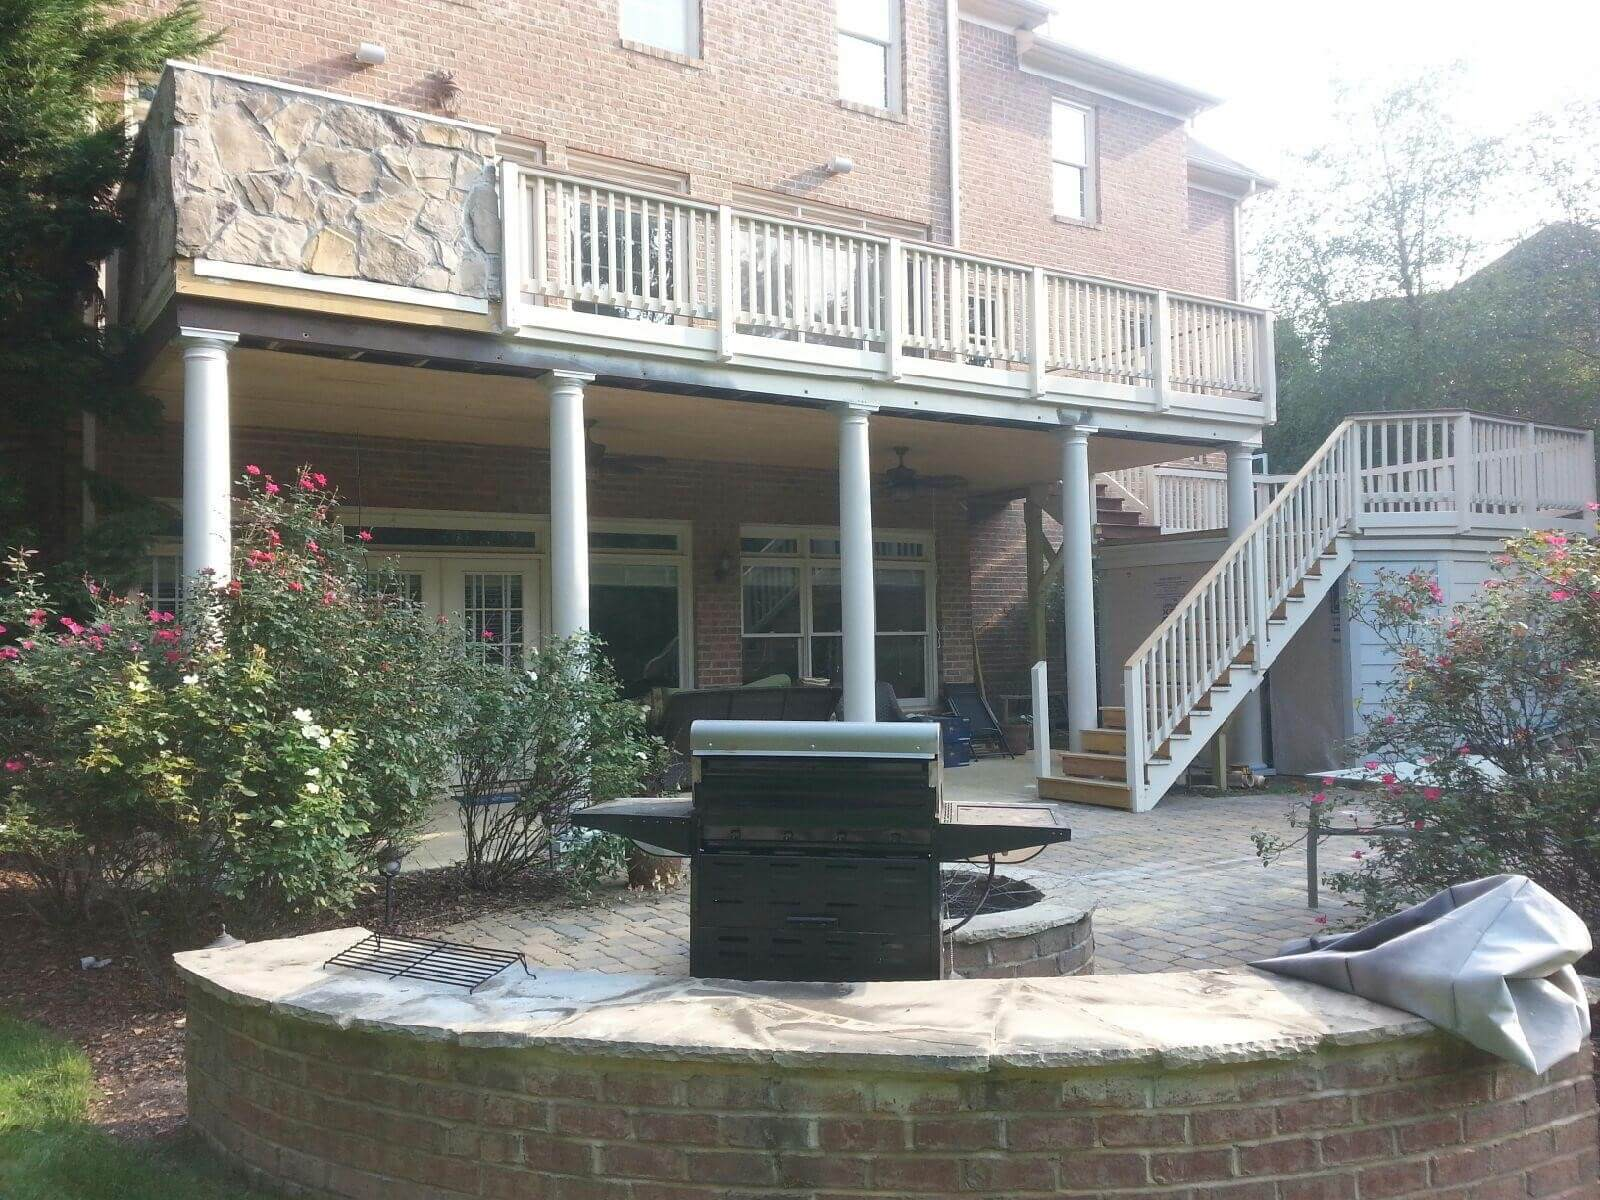 Custom deck and patio with outdoor kitchen and fire pit